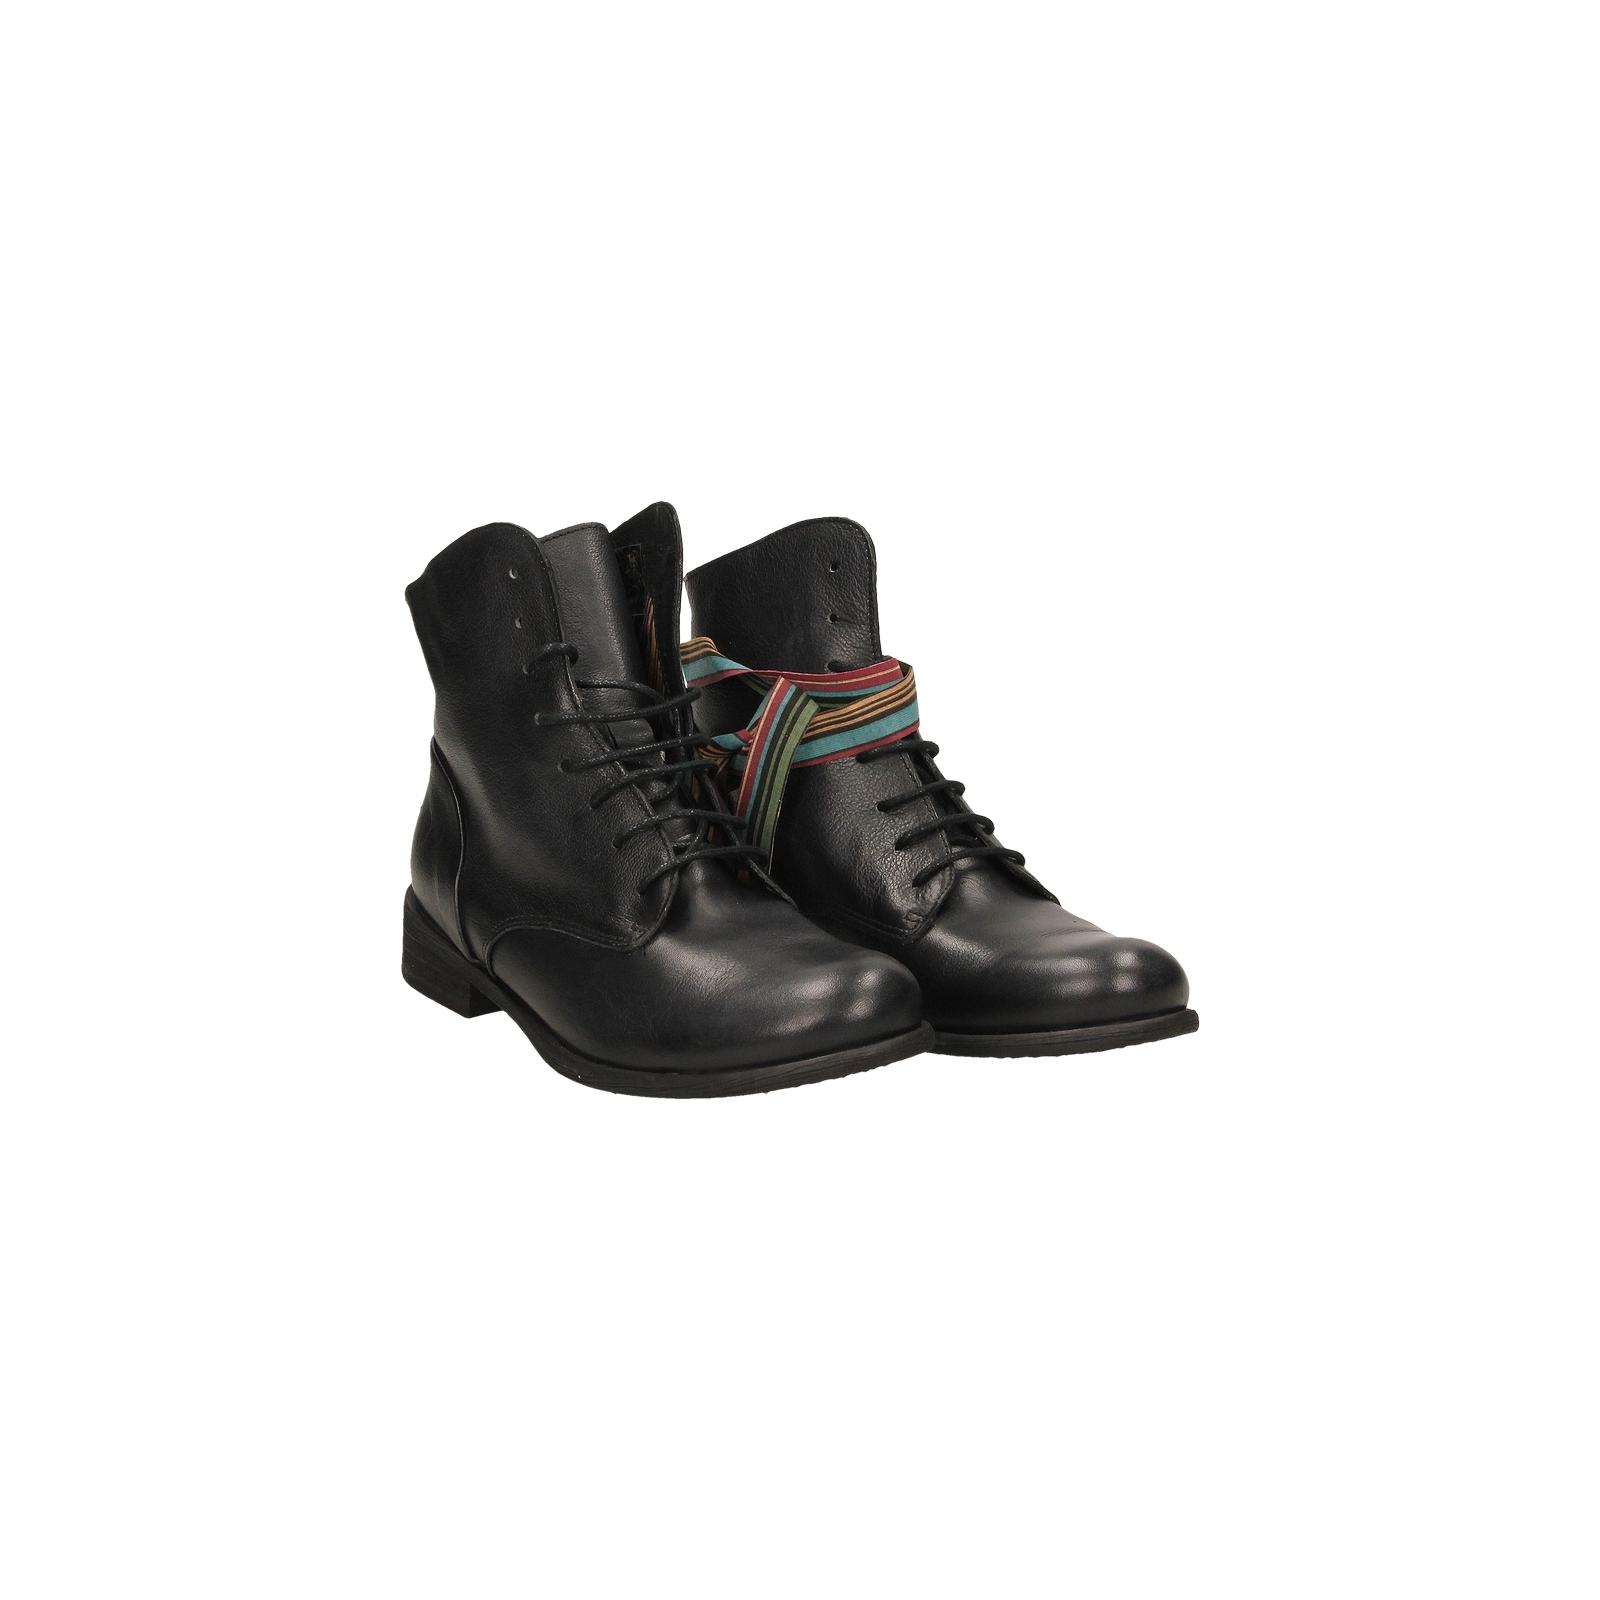 Tucci Design CLAUDIA Tall boot in black leather with front